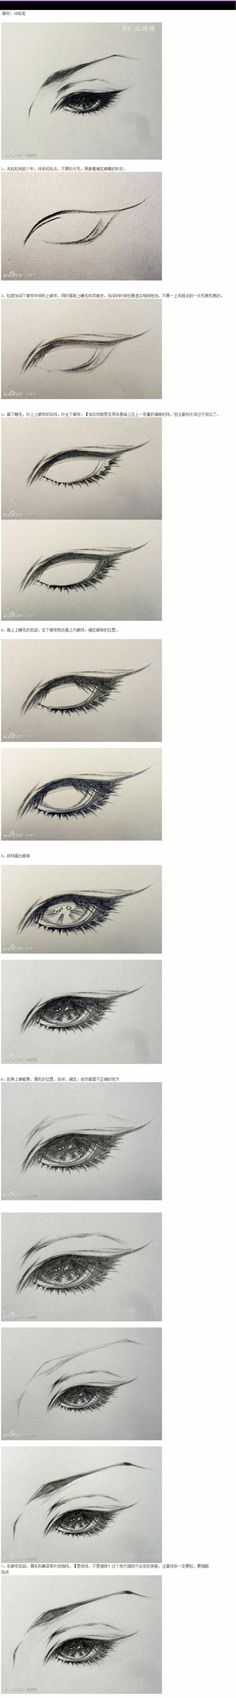 New drawing sketches animation anime eyes Ideas Eye Drawing Tutorials, Drawing Techniques, Drawing Tips, Drawing Reference, Art Tutorials, Drawing Sketches, Cool Drawings, Drawing Ideas, Sketching